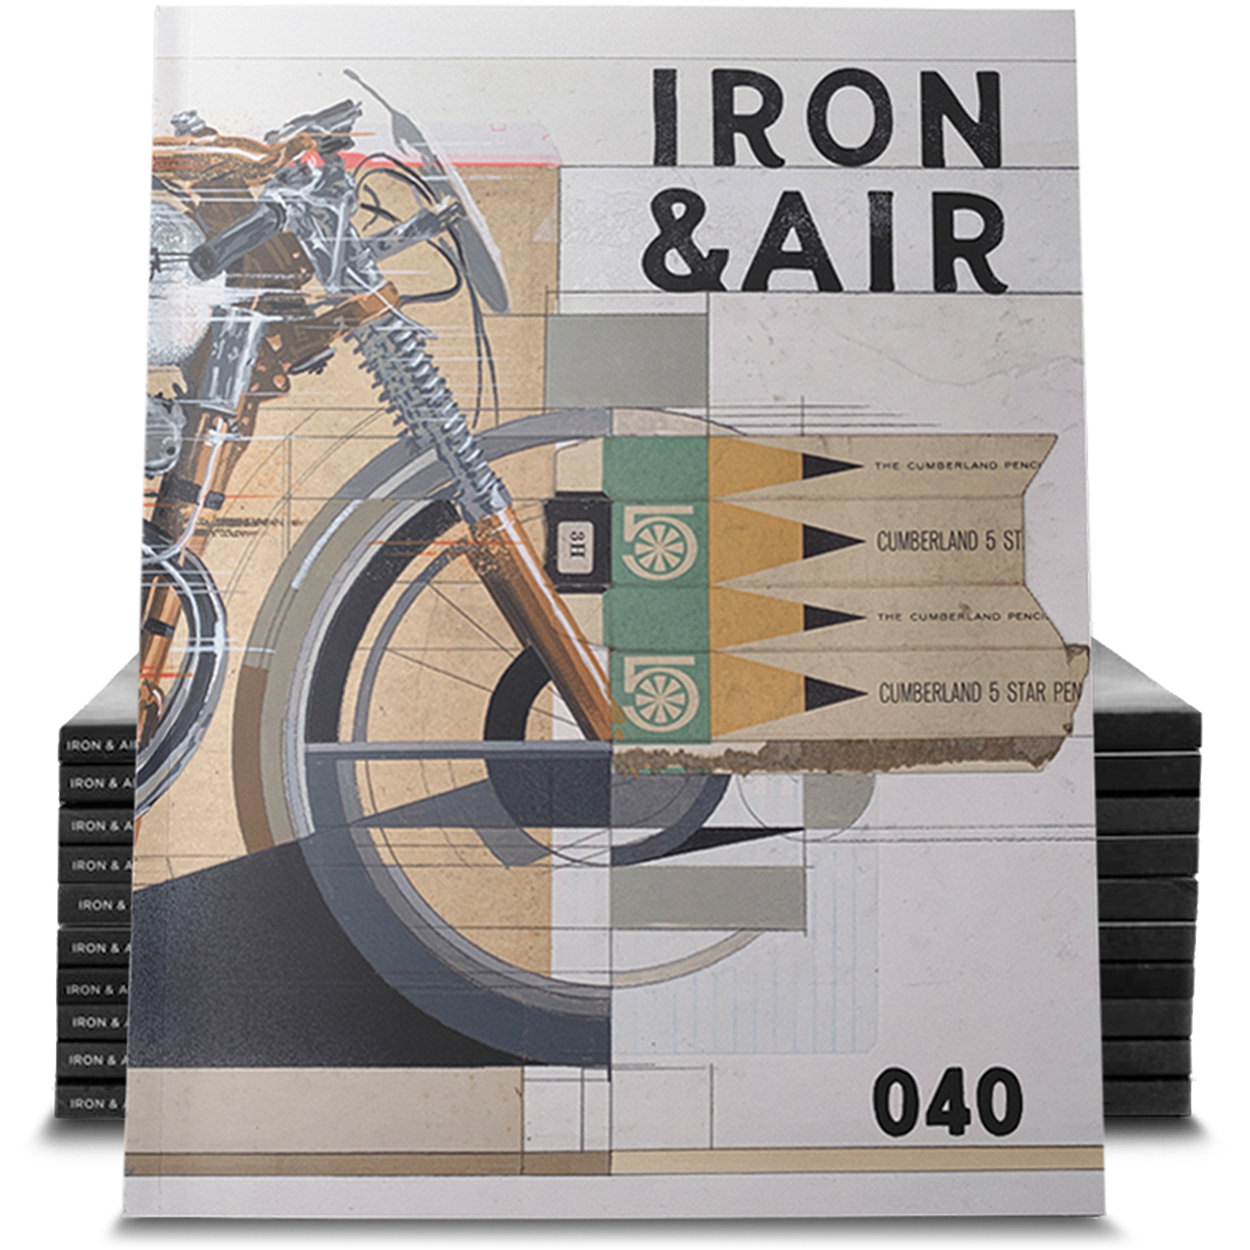 Iron & Air subscription offer